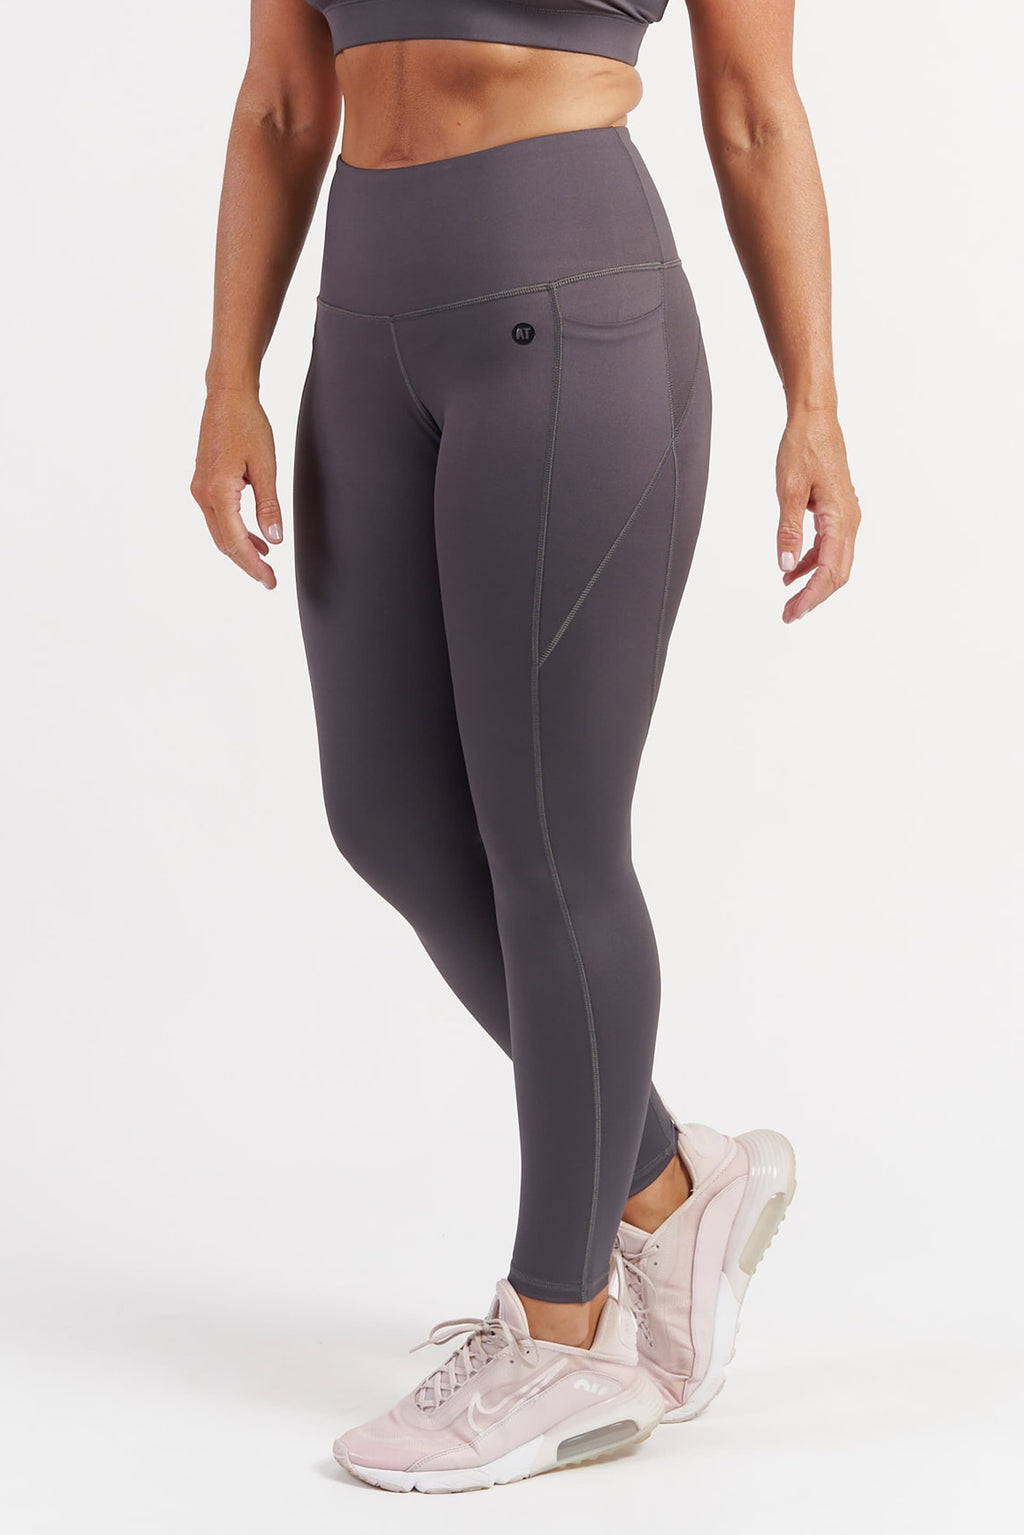 full-length-gym-tights-grey-large-side